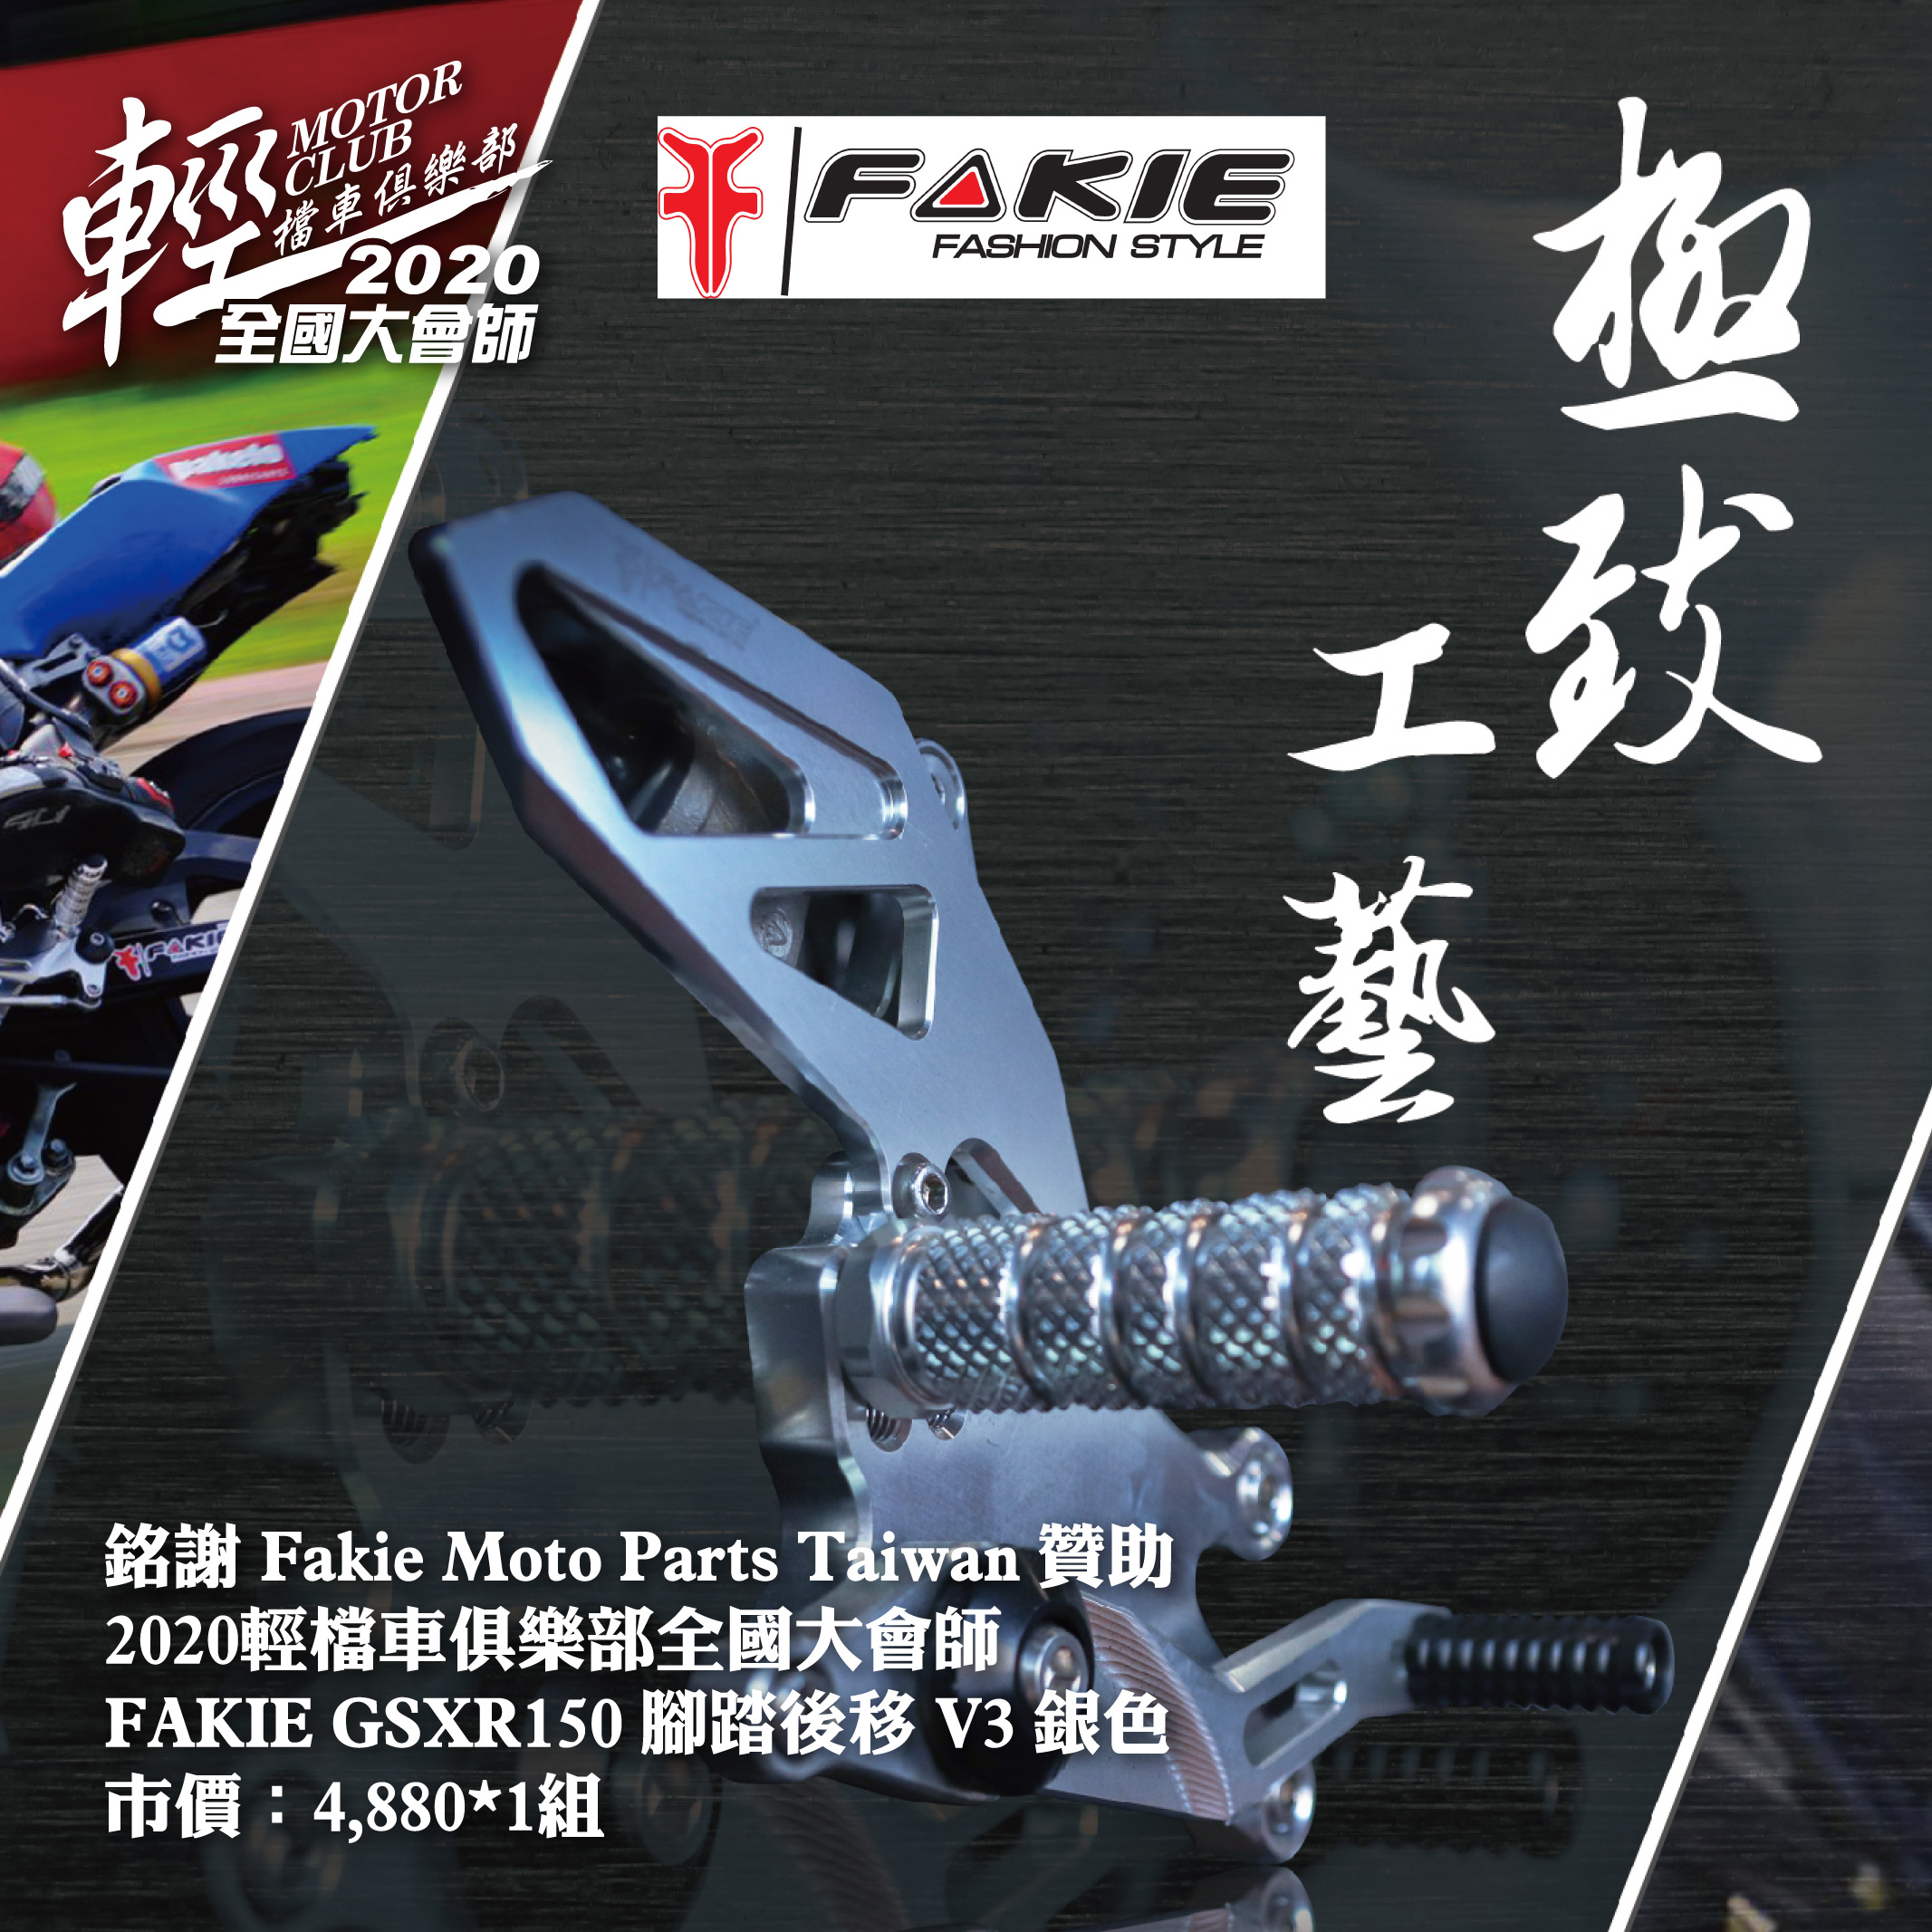 Fakie Moto Parts Taiwan